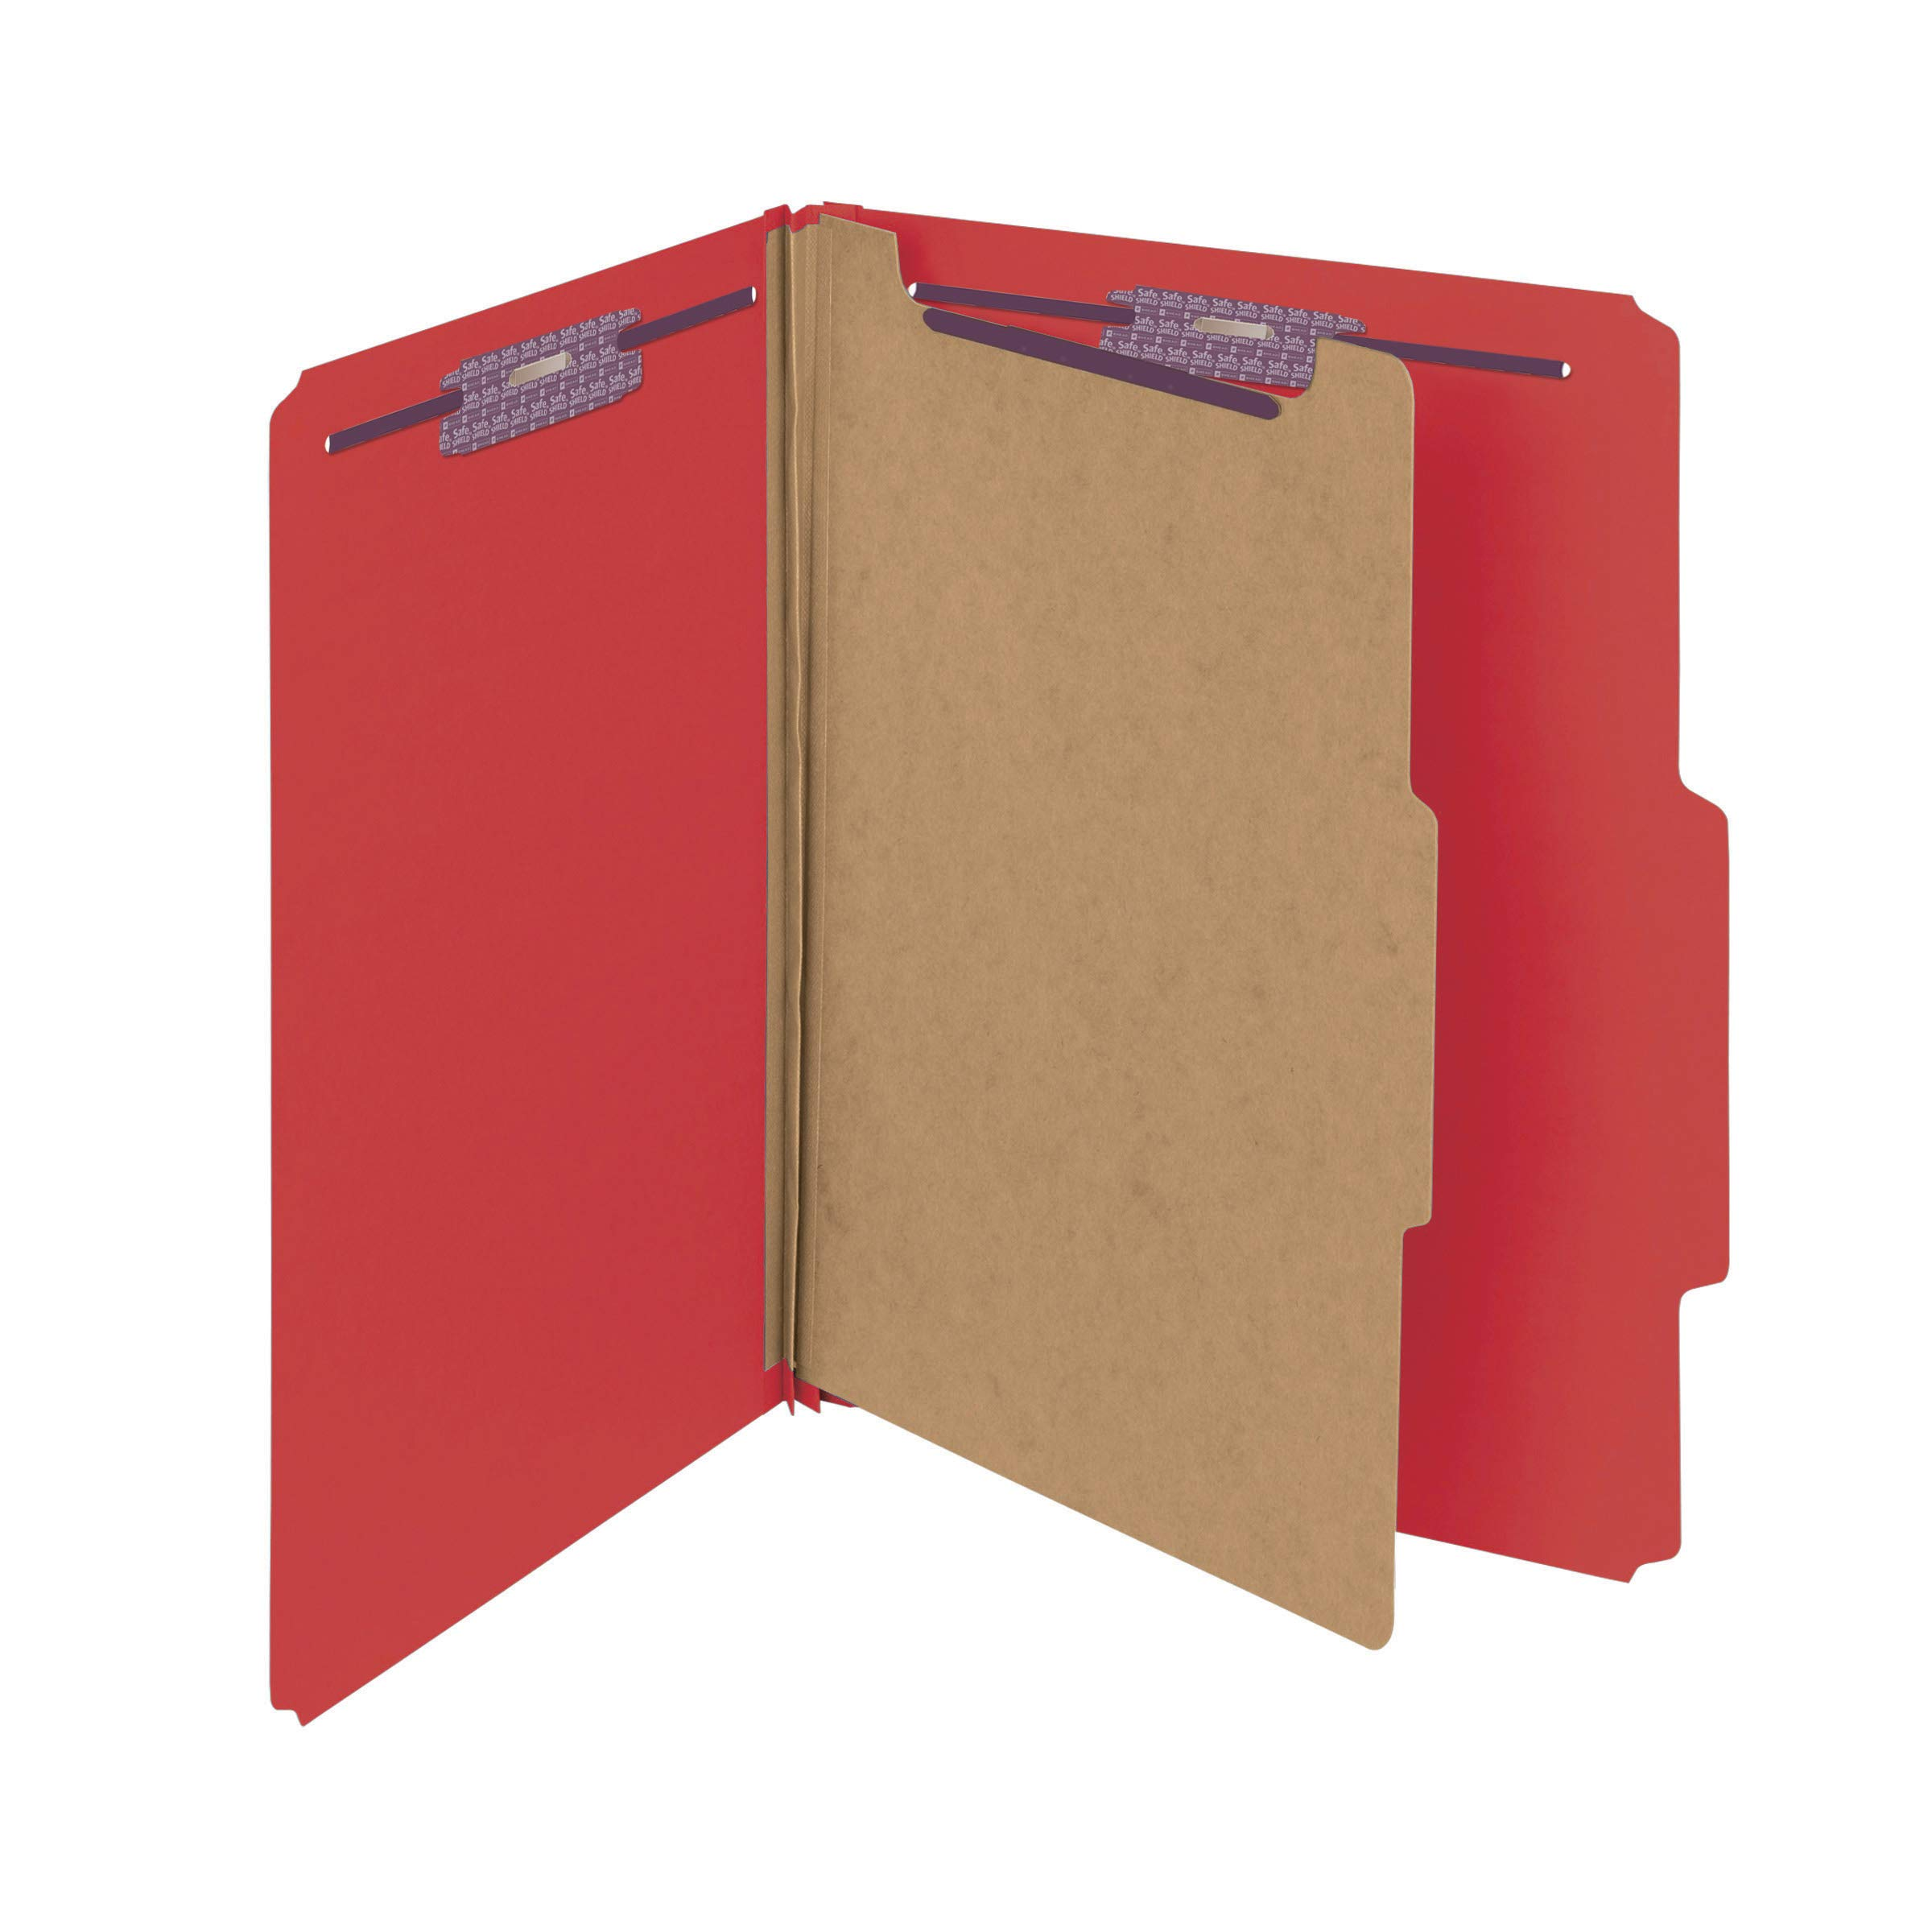 Smead Pressboard Classification File Folder with SafeSHIELD Fasteners, 1 Divider, 2'' Expansion, Letter Size, Bright Red, 10 per Box (13731)